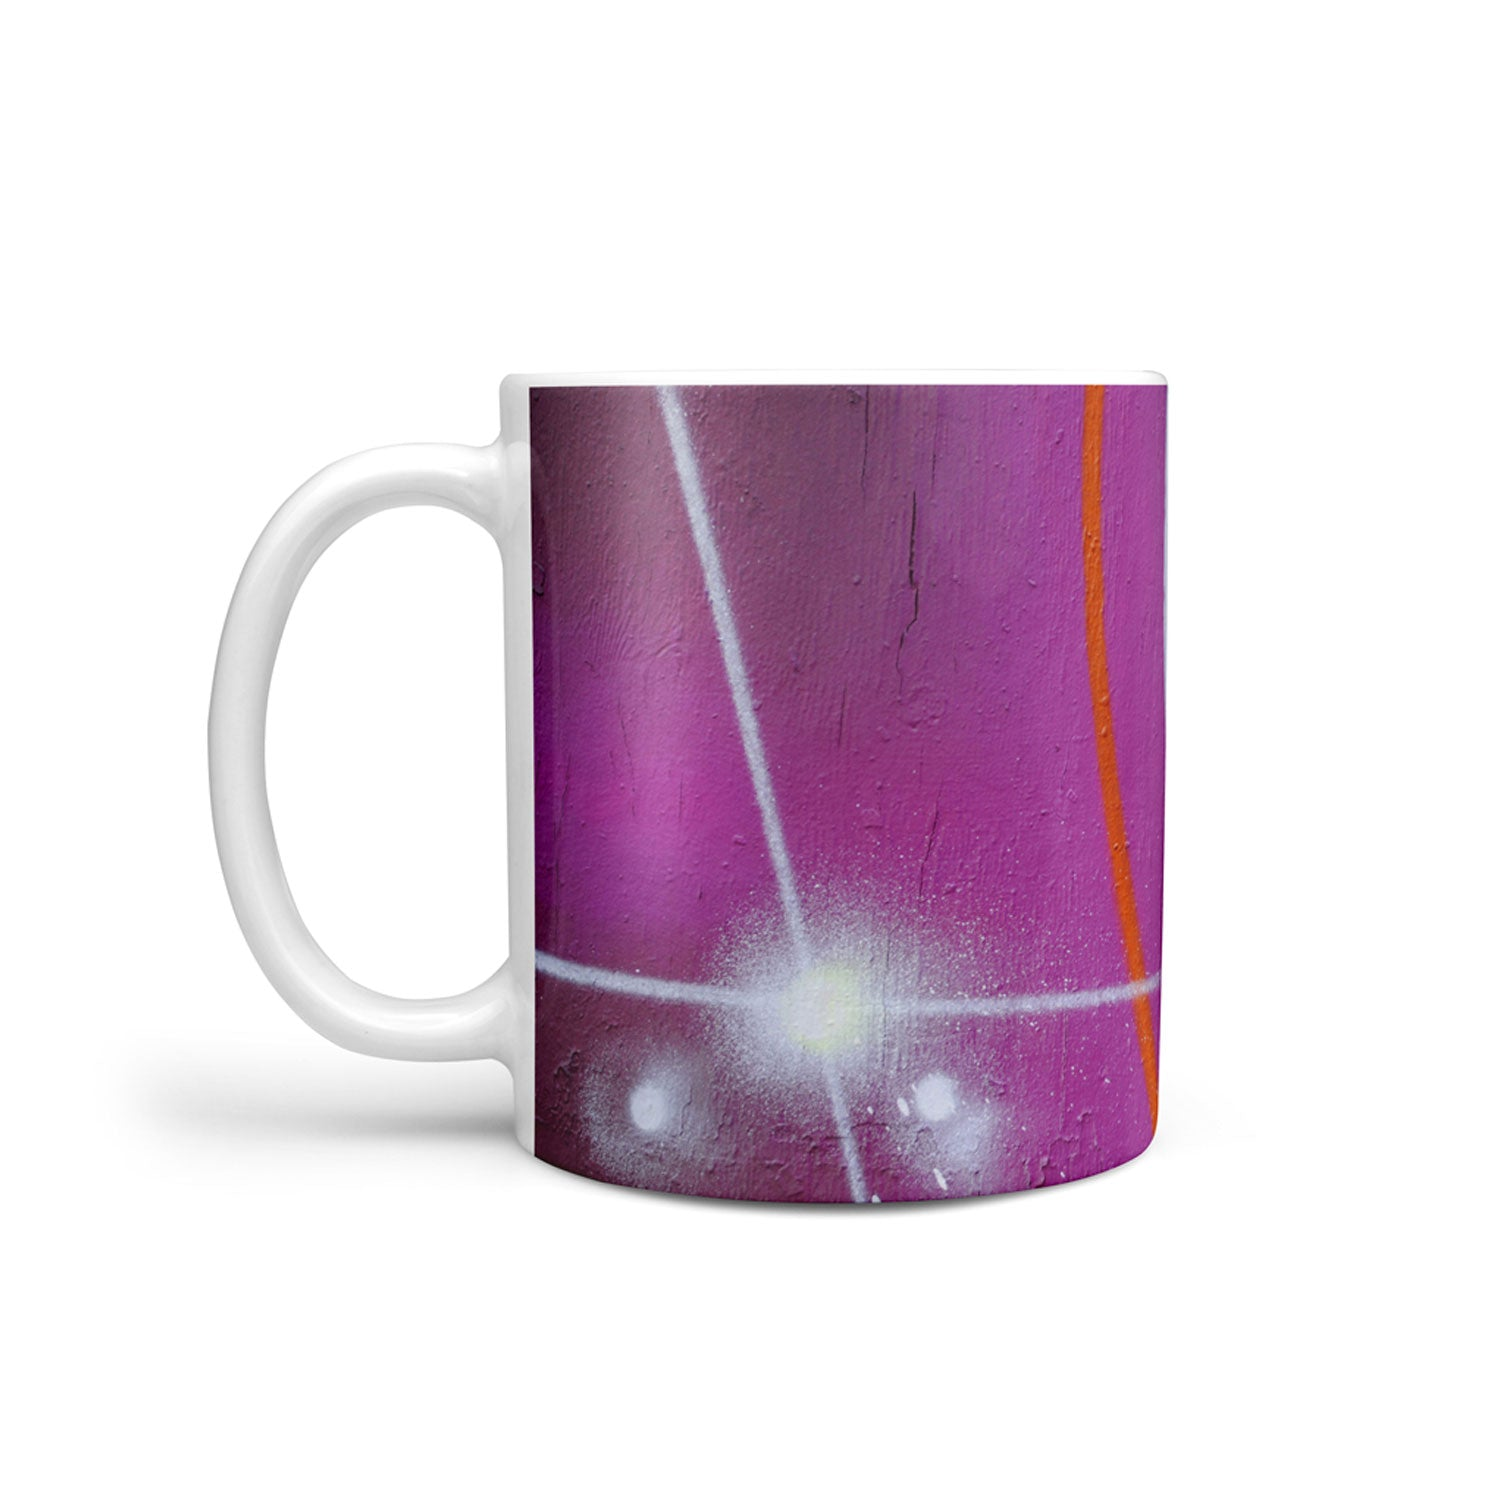 mug with purple and teal graffiti print